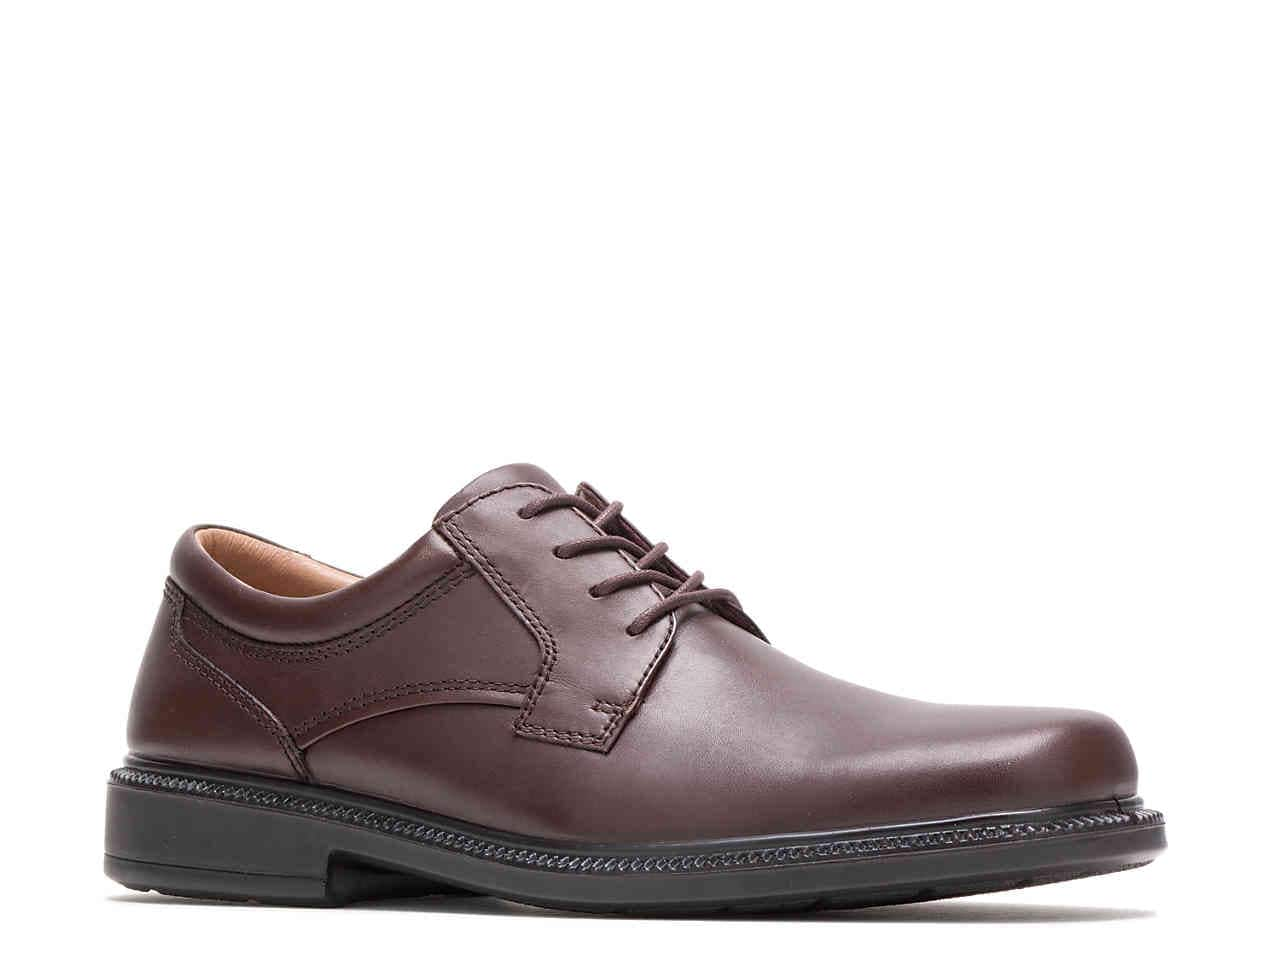 HUSH PUPPIES STRATEGY OXFORD  (brown color only) for 14.94 @DSW